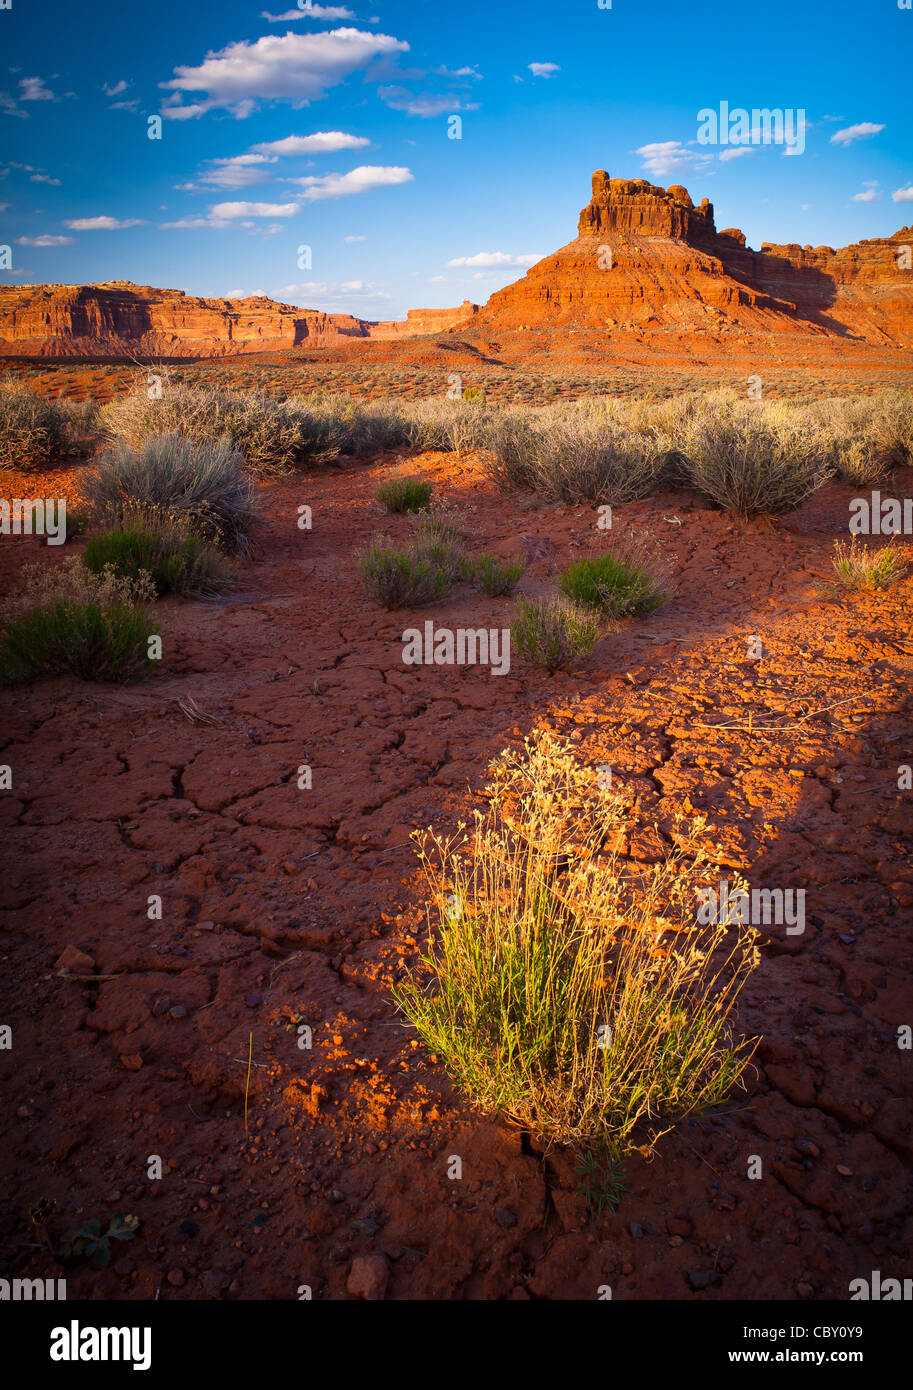 Cracked earth and bushes in Valley of the Gods, Utah - Stock Image